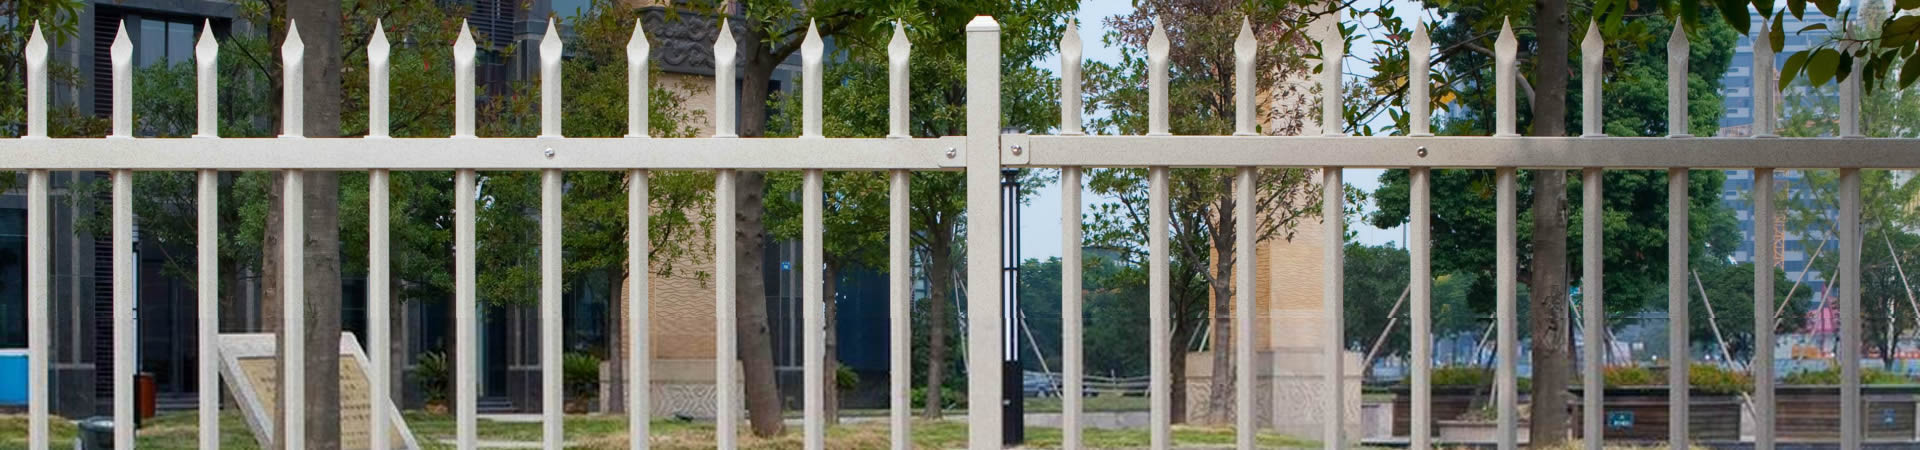 Ornamental iron panels -  Ornamental Component Steel Fence Panels With Pressed Spear Top